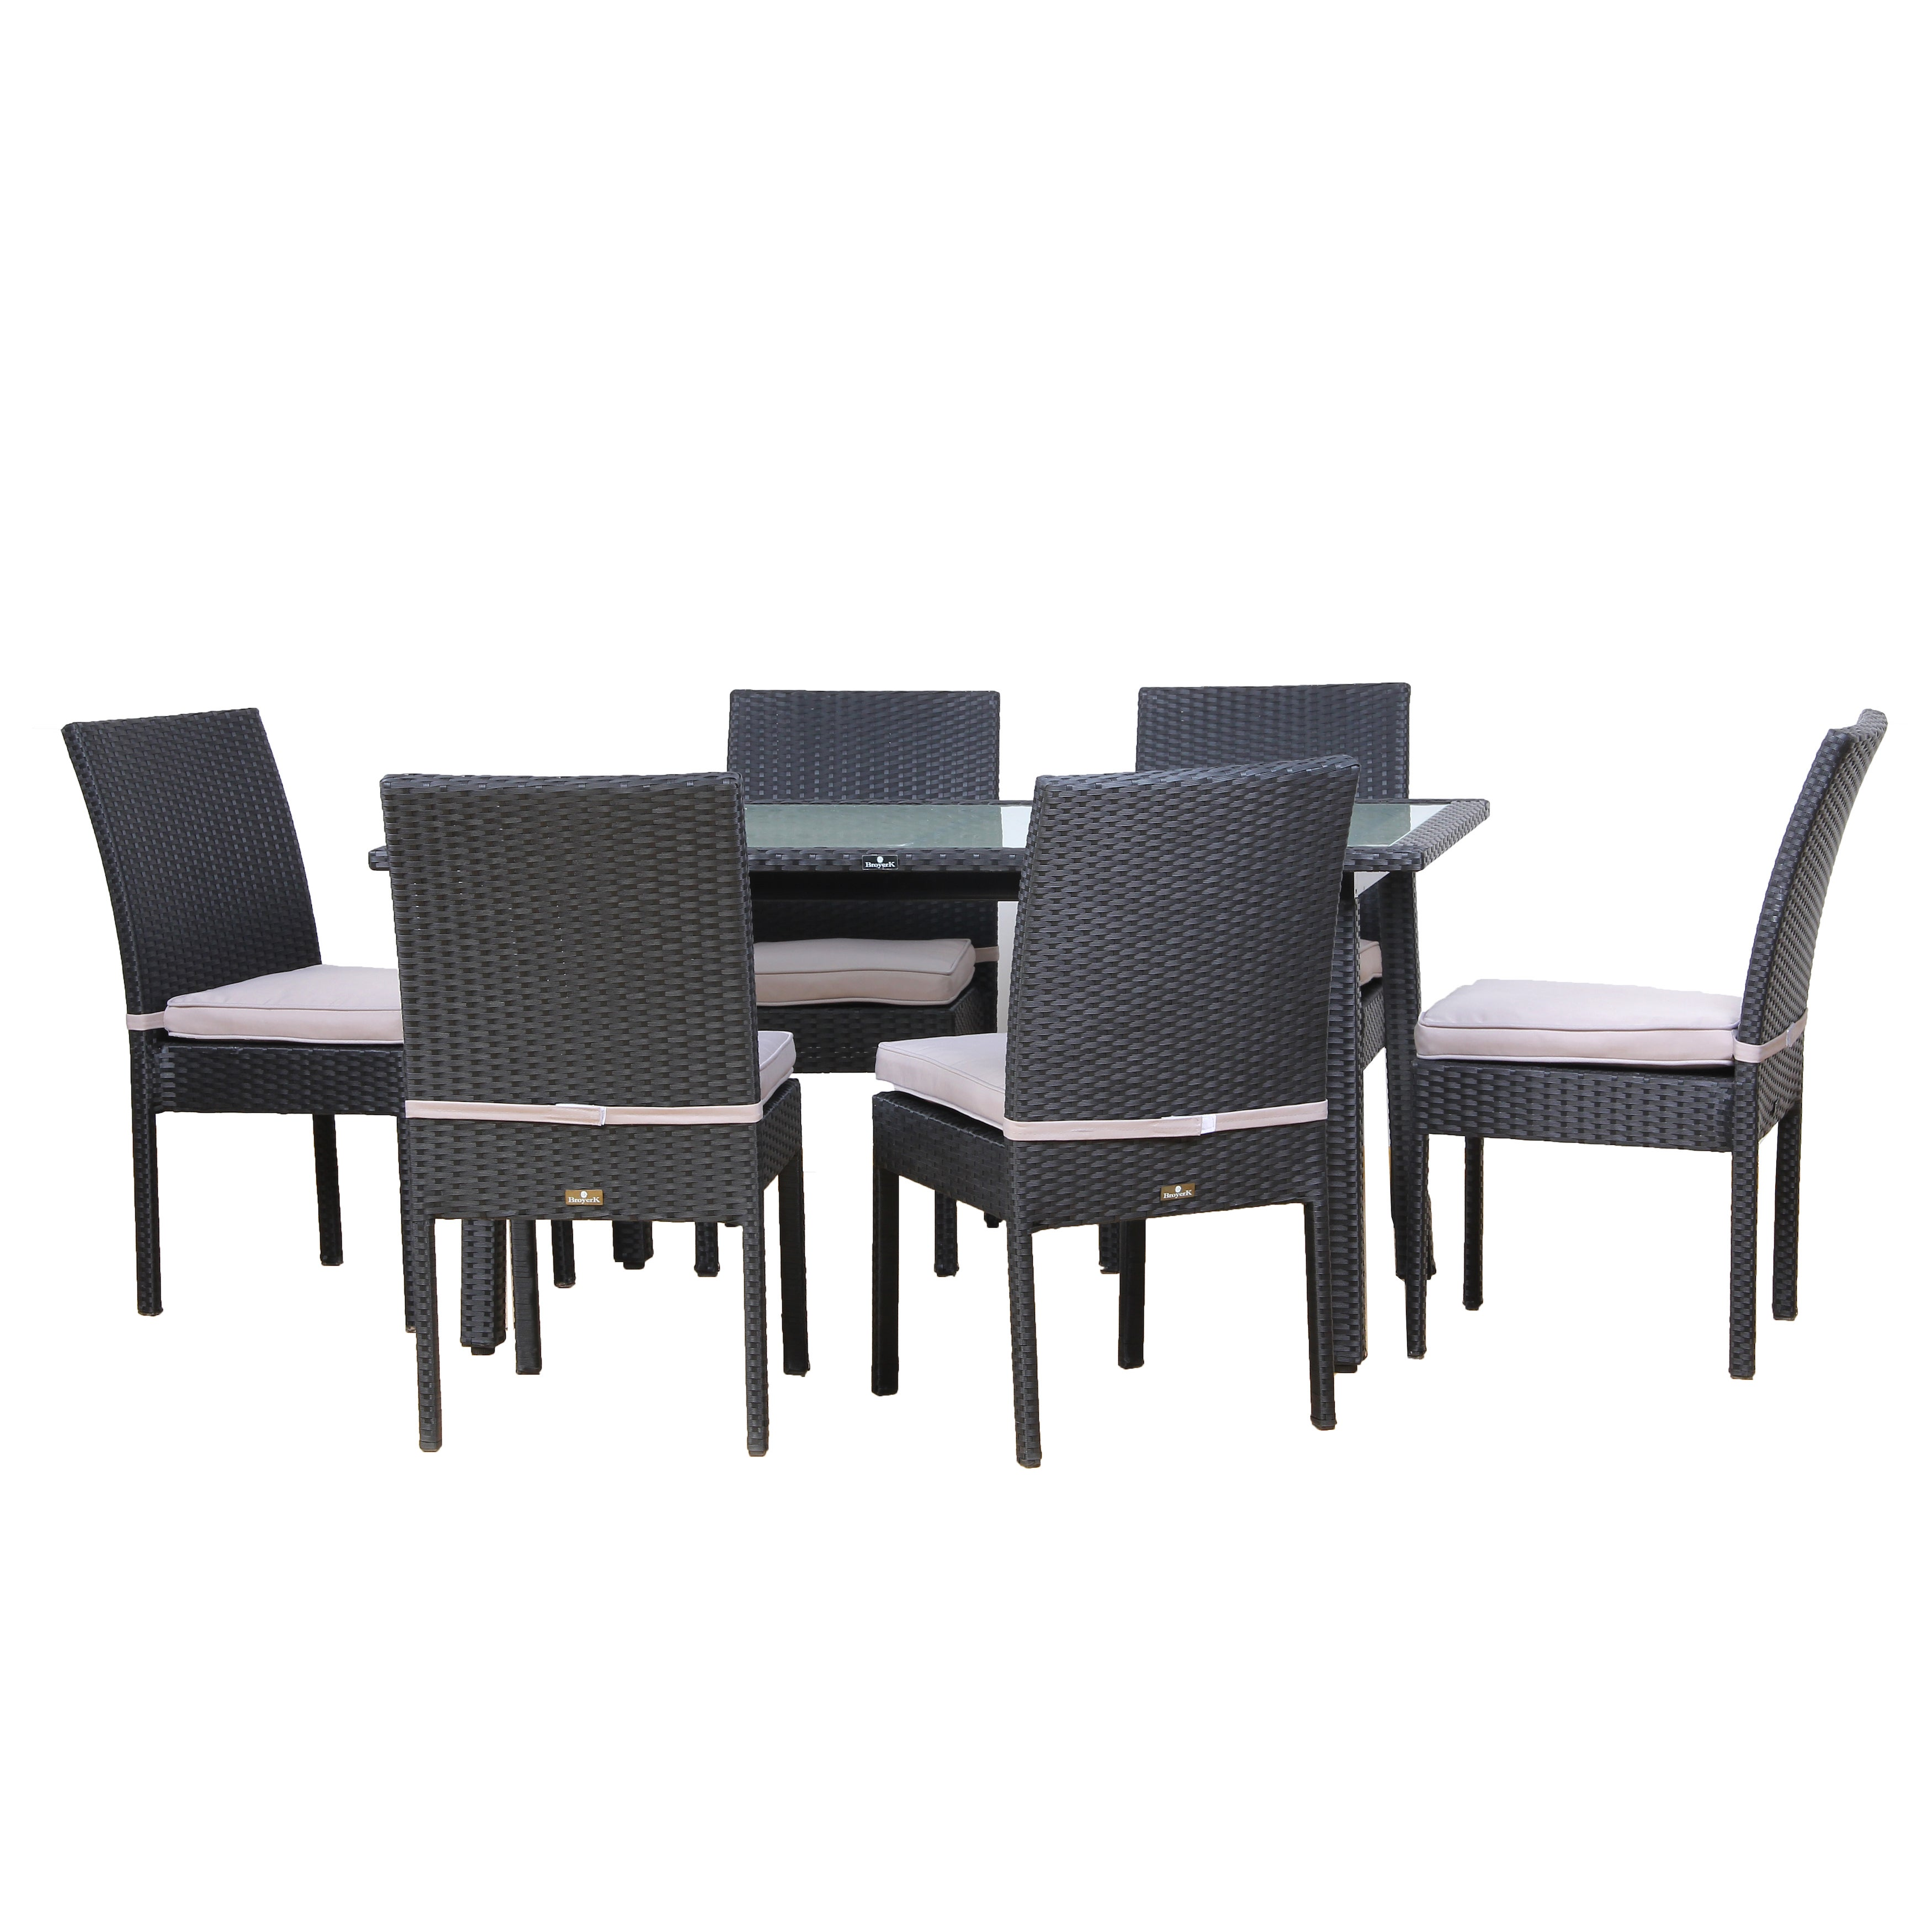 Broyerk Outdoor Dining Set Gl Table 6 Chairs Patio Furniture Free Shipping Today 21014309